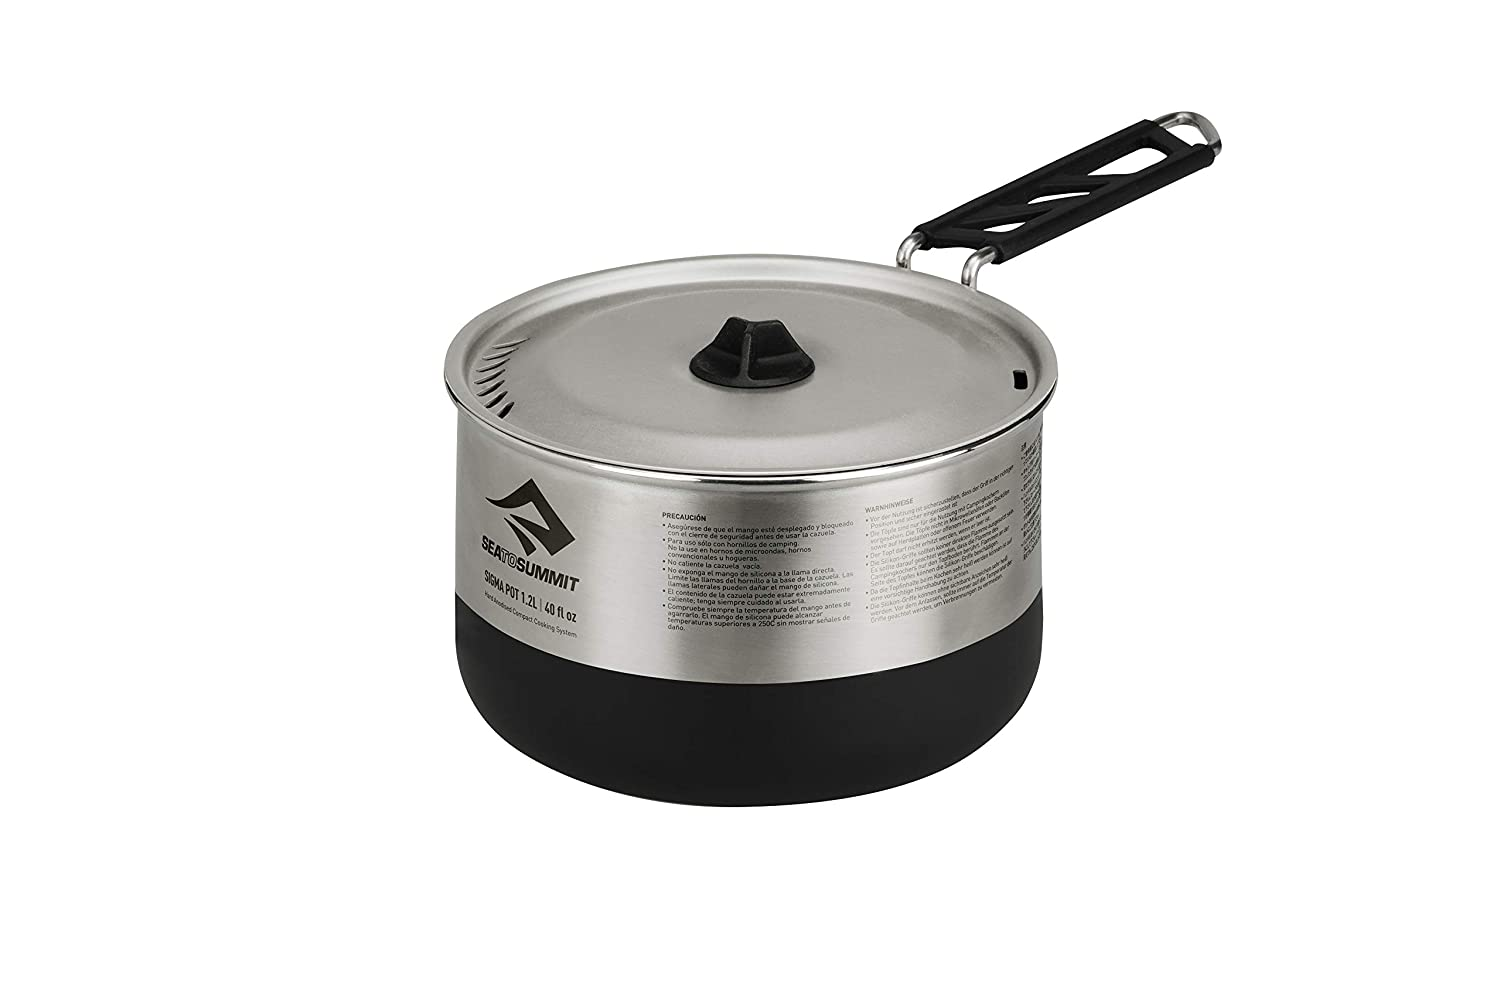 Sea to Summit Sigma Stainless Steel Camping Pot: Sea to ...